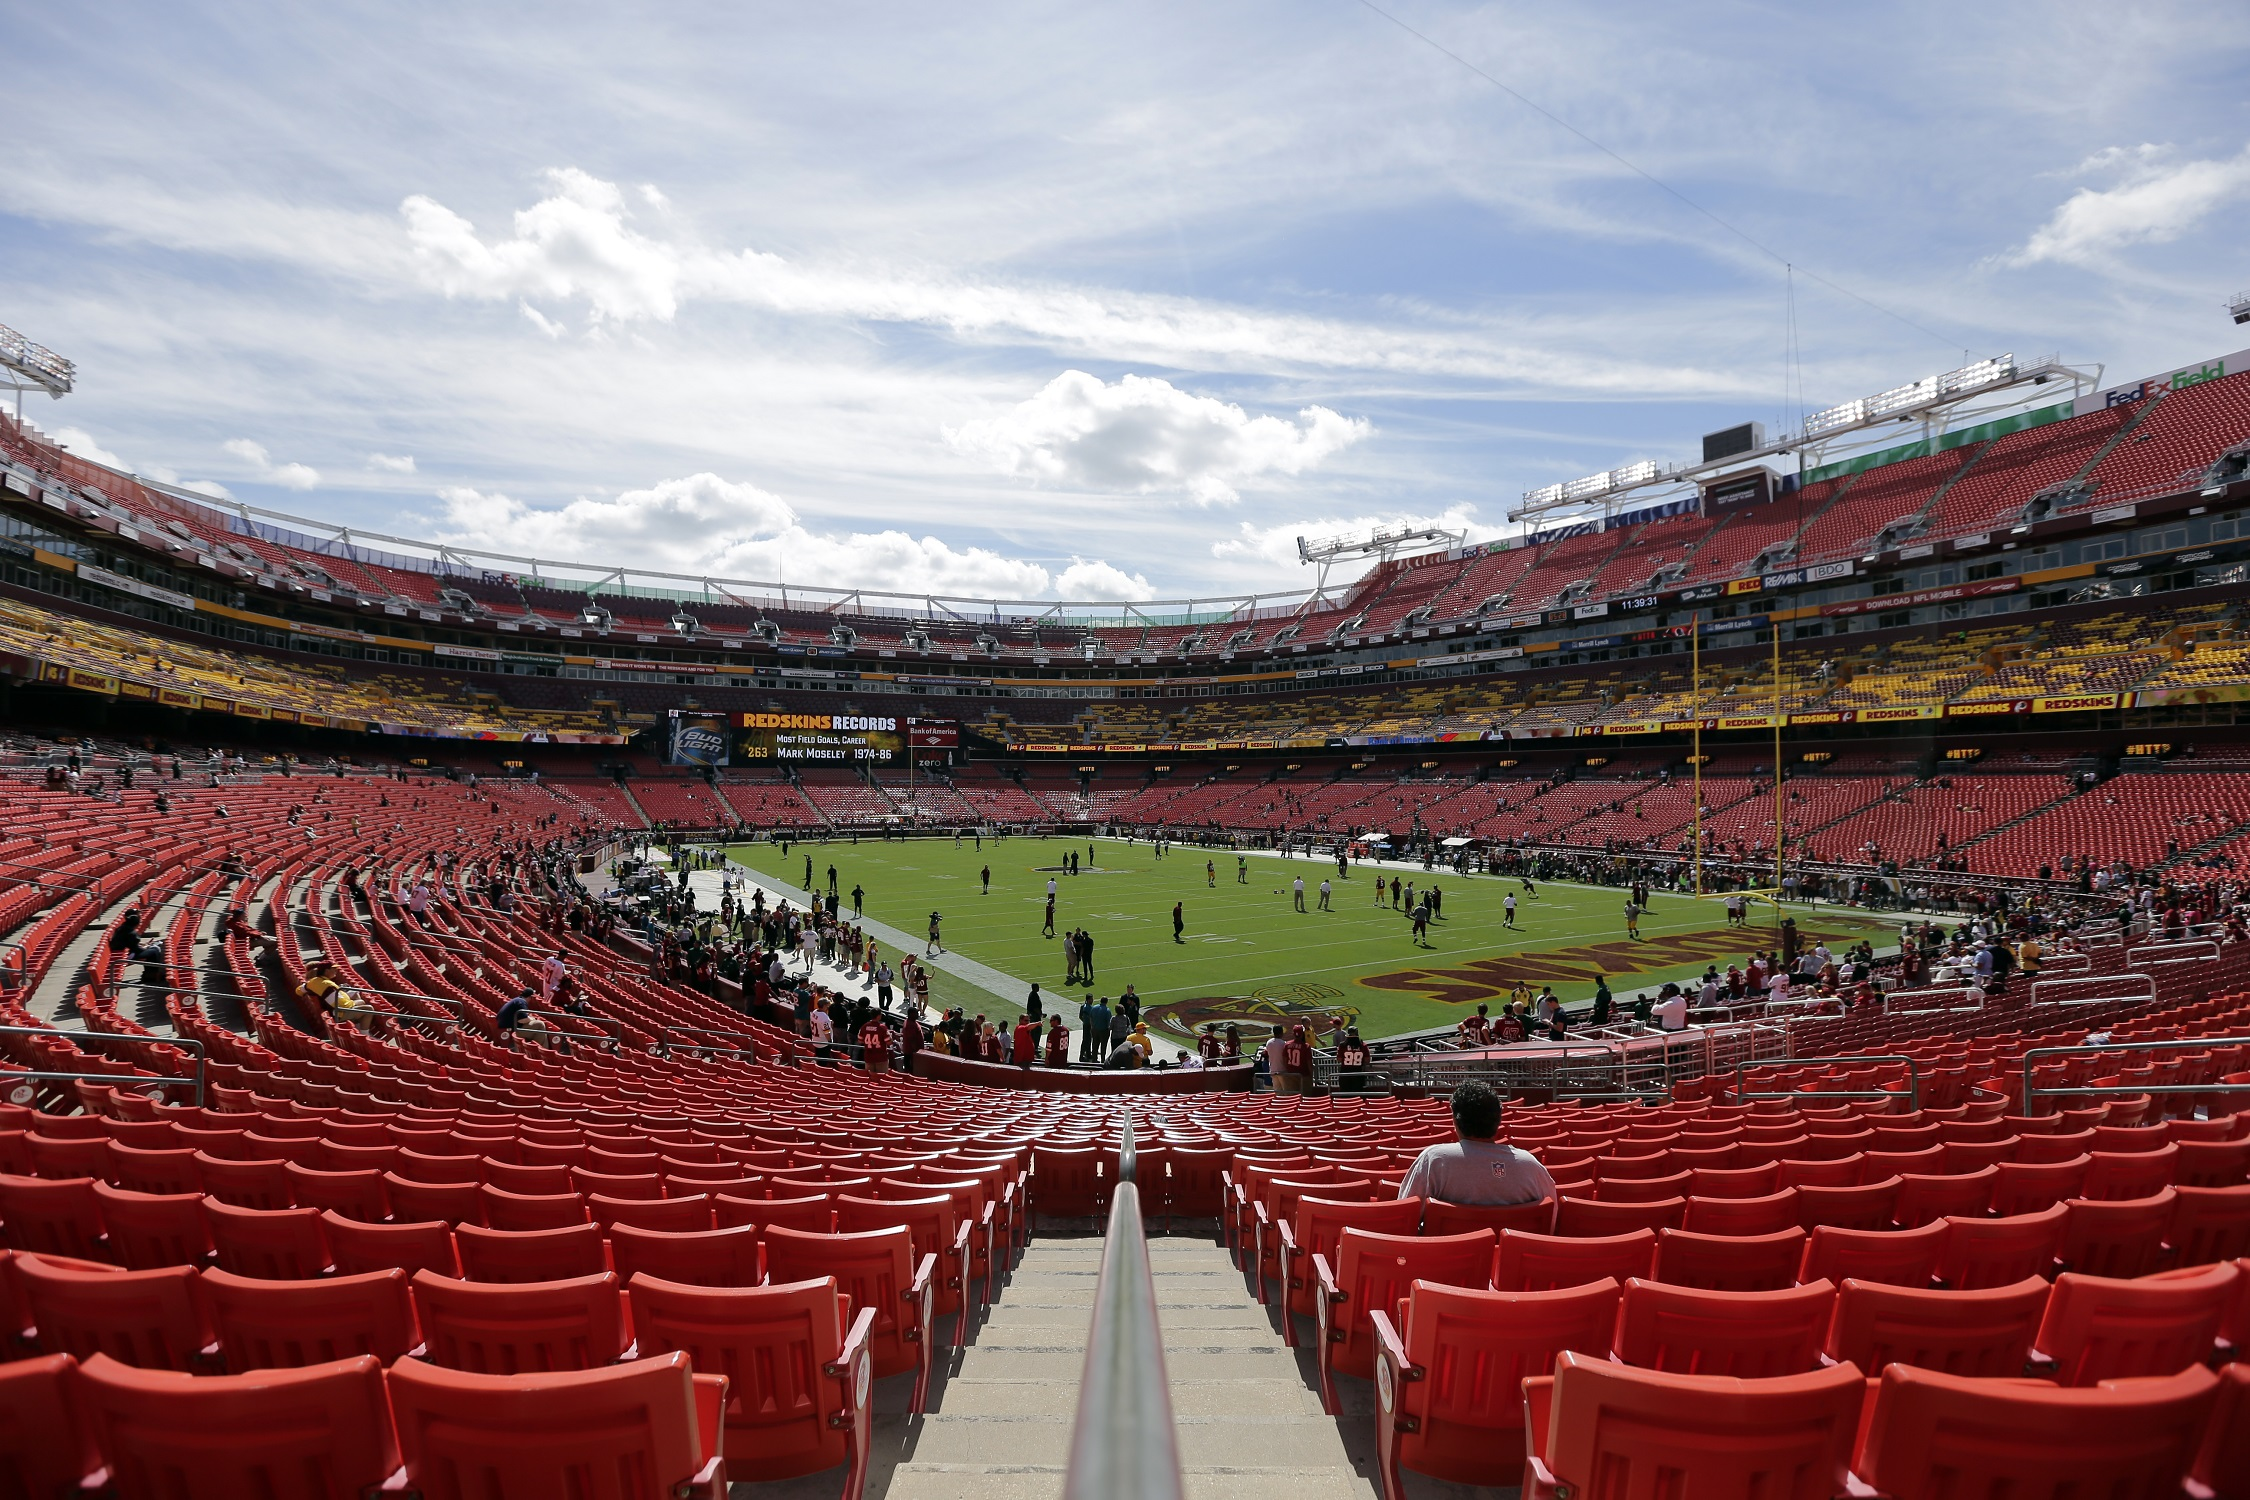 Redskins Remove Thousands Of Seats From Fedex Field